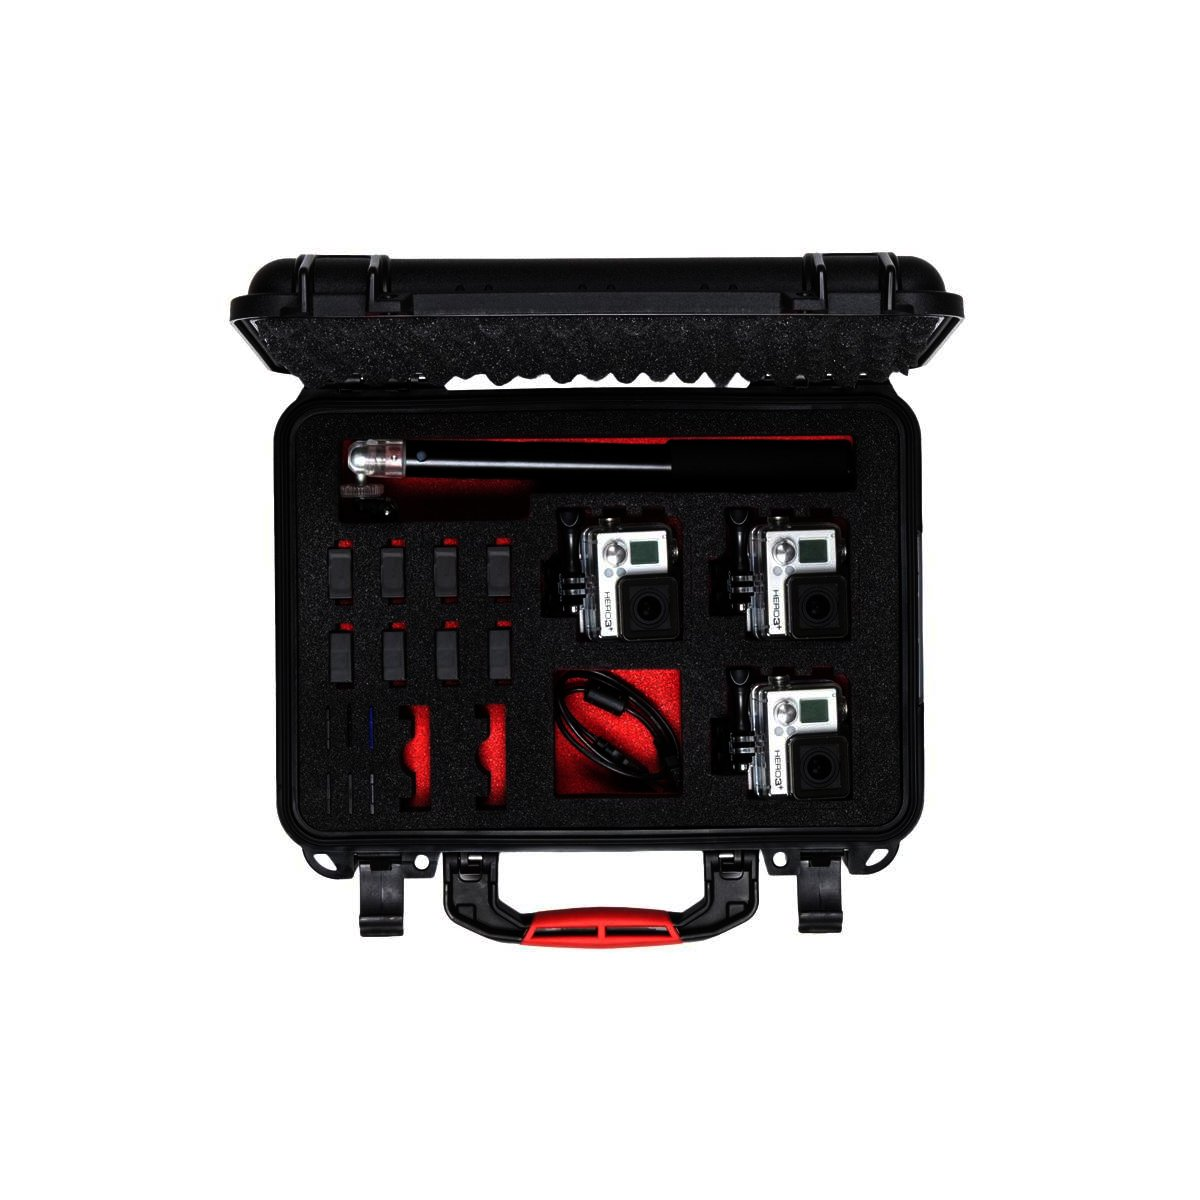 GPR2350 HPRC 2350 Case For Go-Pros